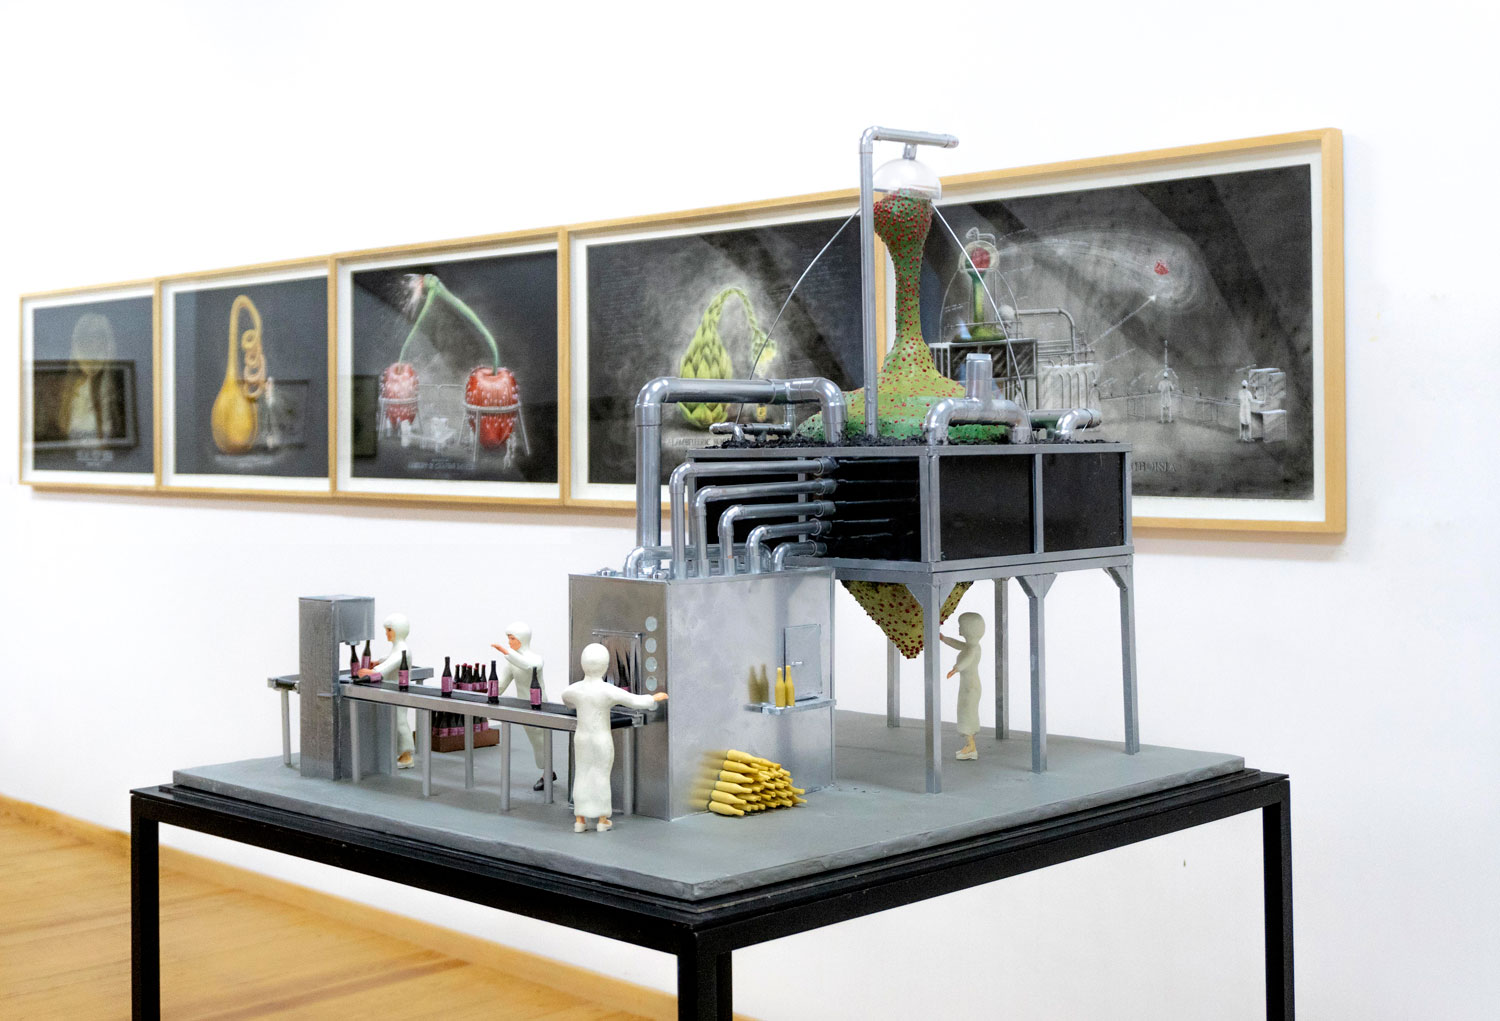 You are browsing images from the article: PhD Exhibition: When Scent Makes Seeing, When Seeing Makes Scents